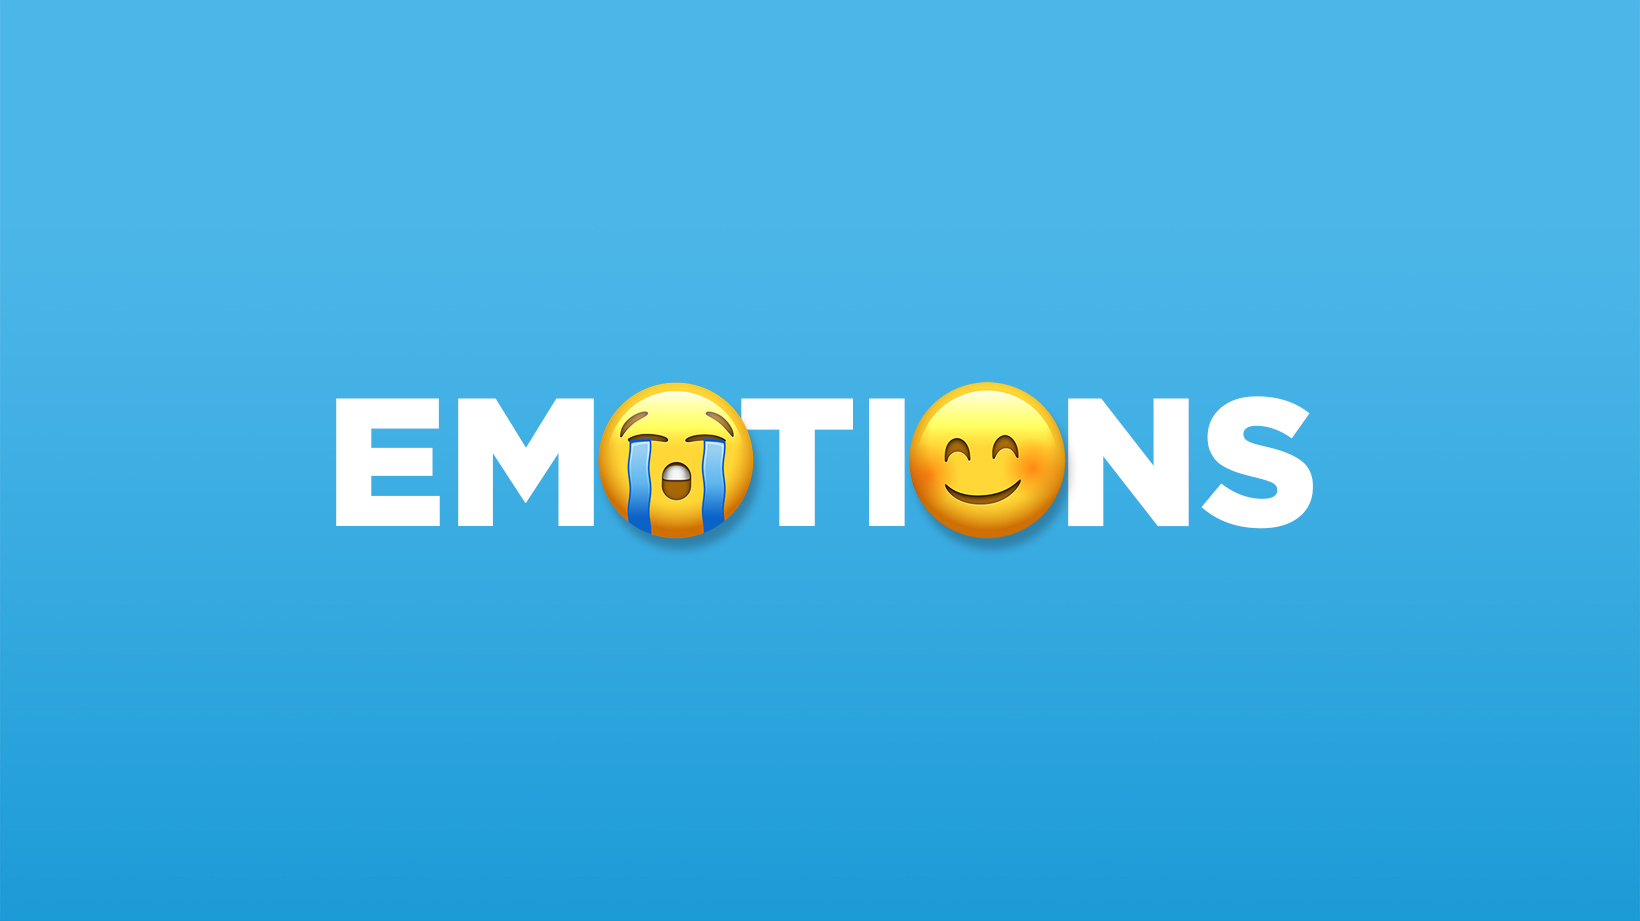 Emotions_msg_FacebookCover